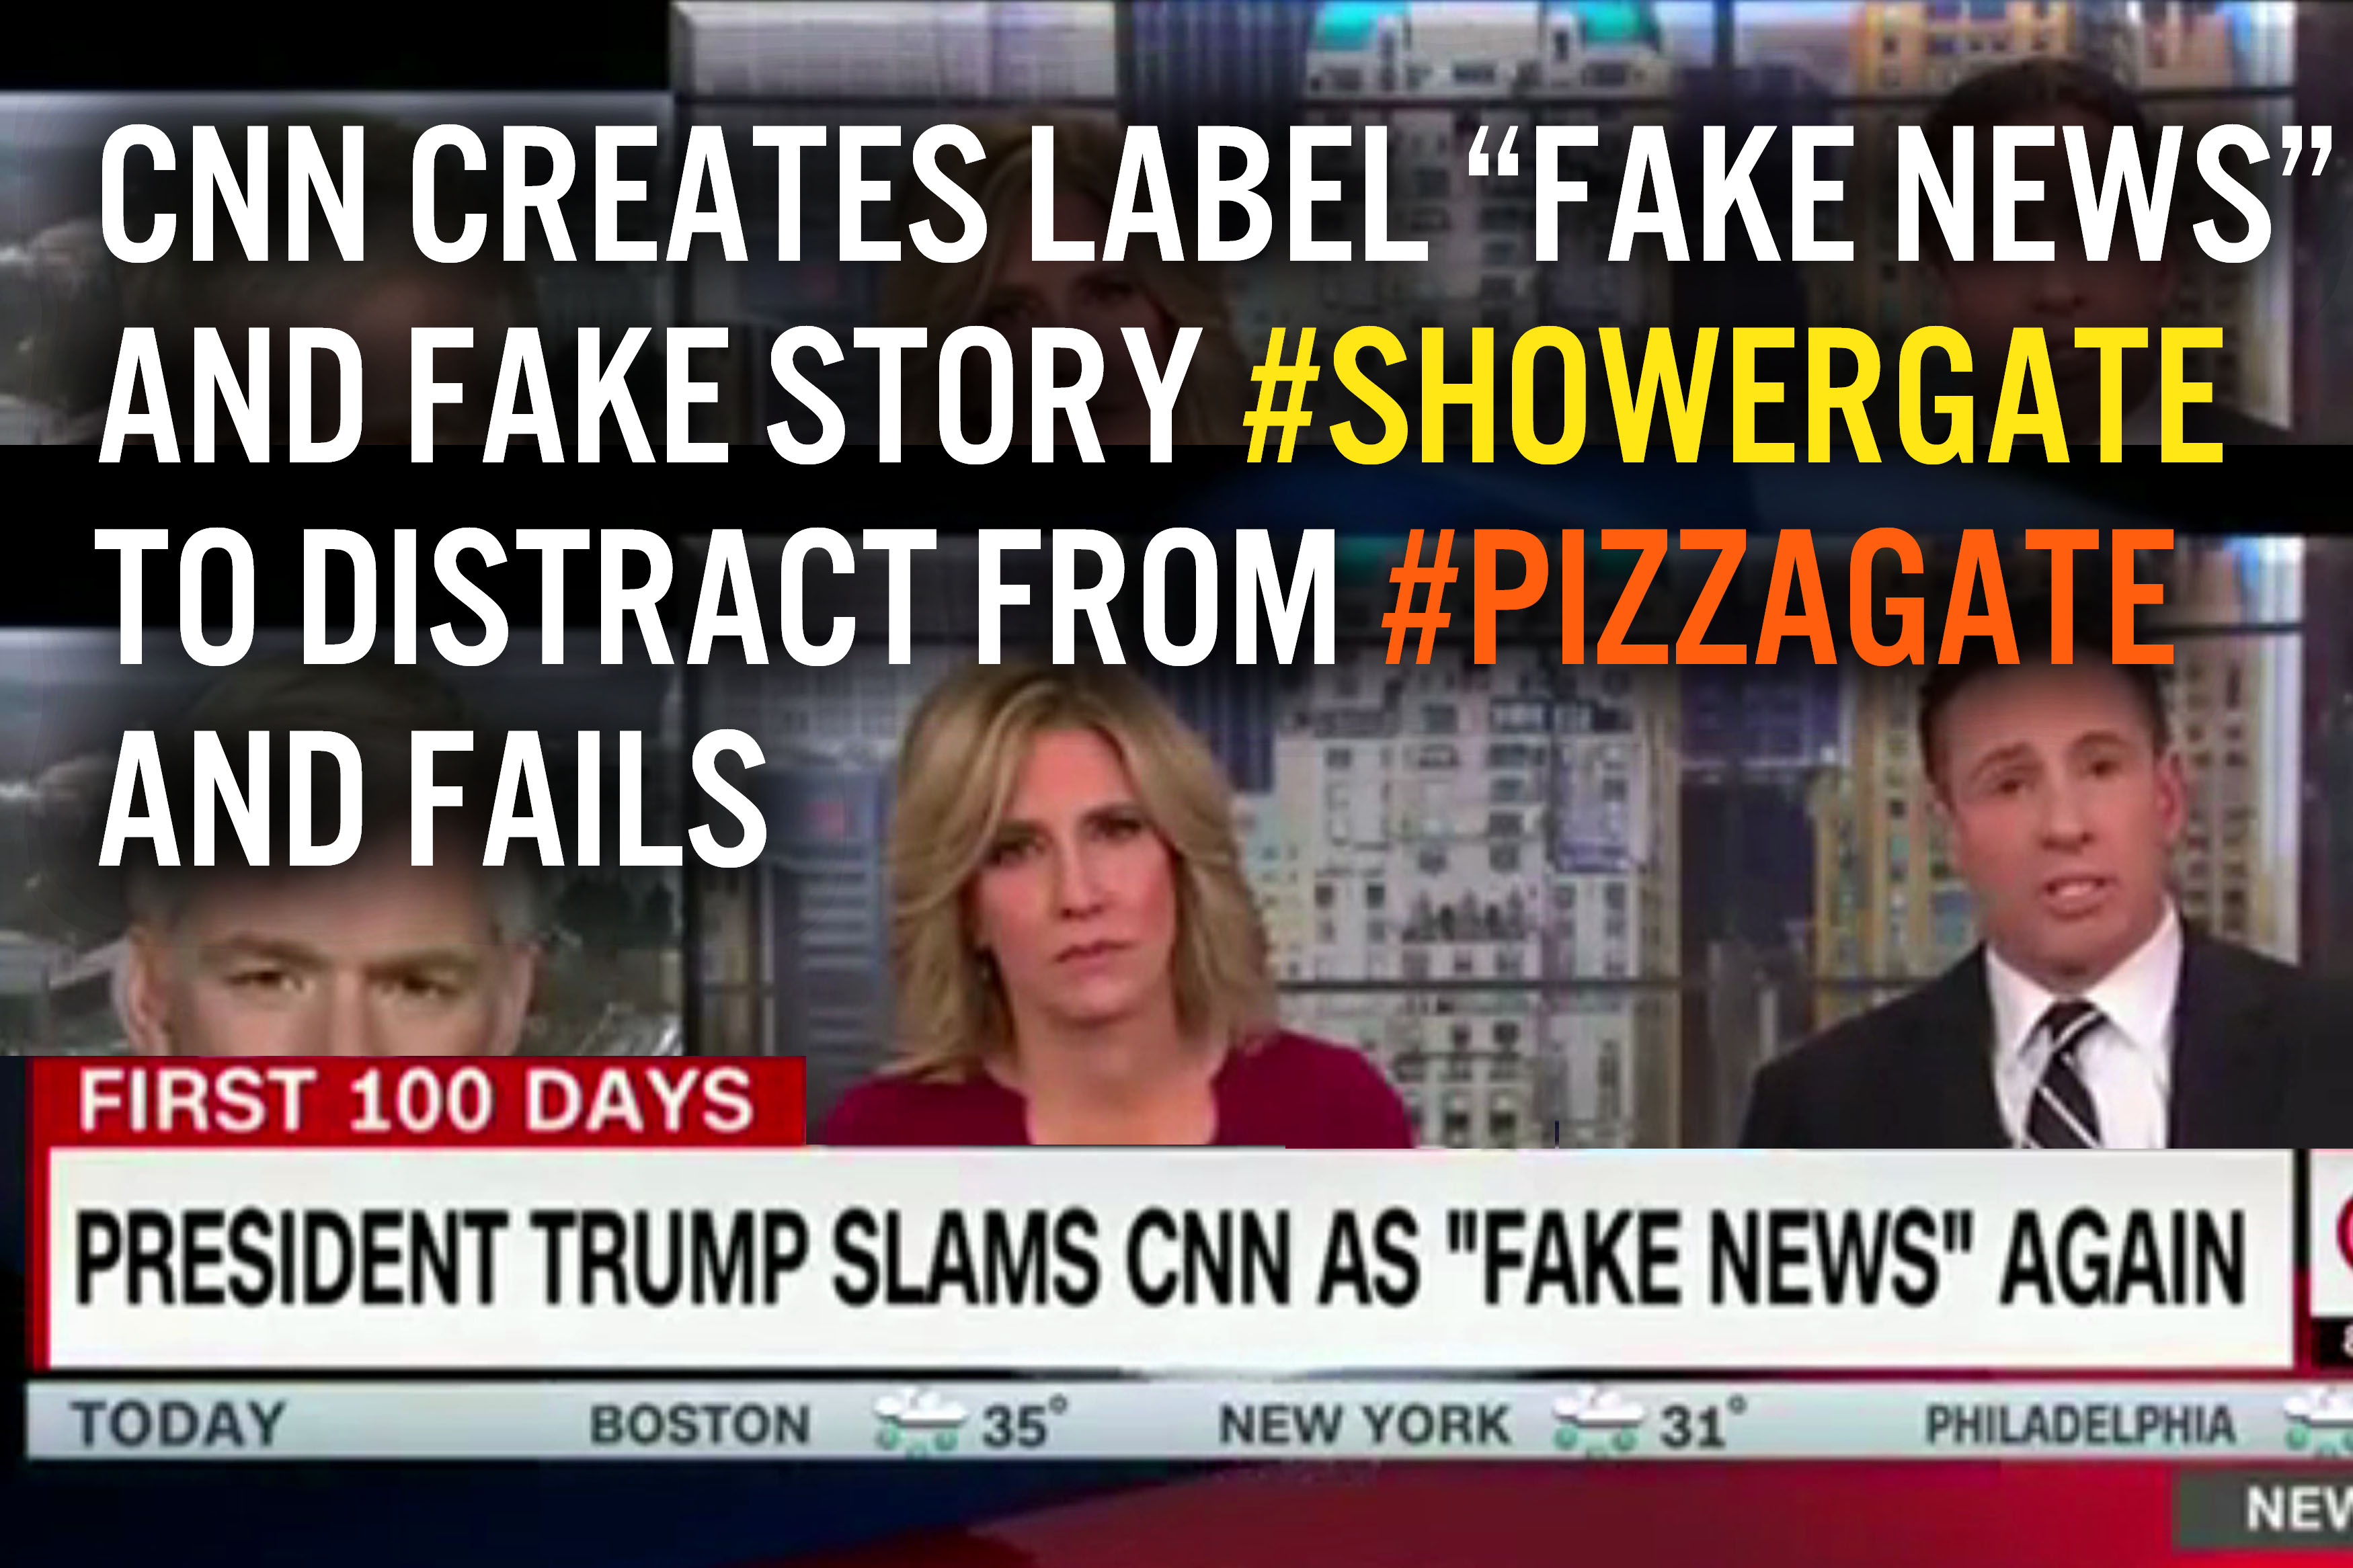 Pizzagate Showergate